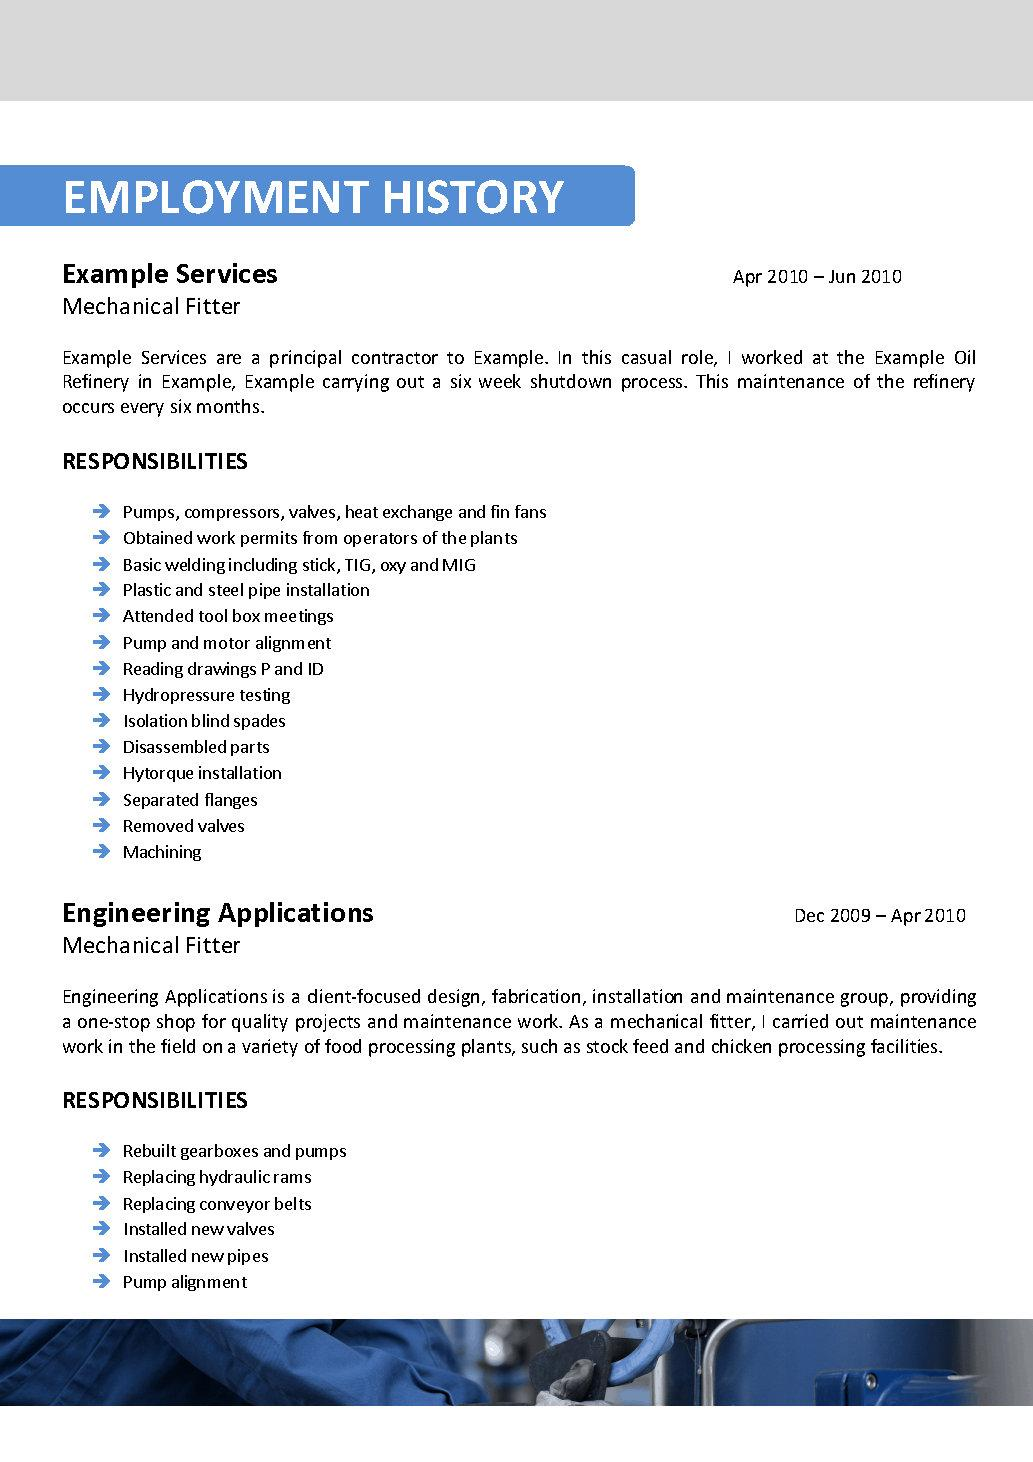 Resume Cv Writing Services Resume Writer In Australia Fast Online Help Professional Resume Writers In Orlando